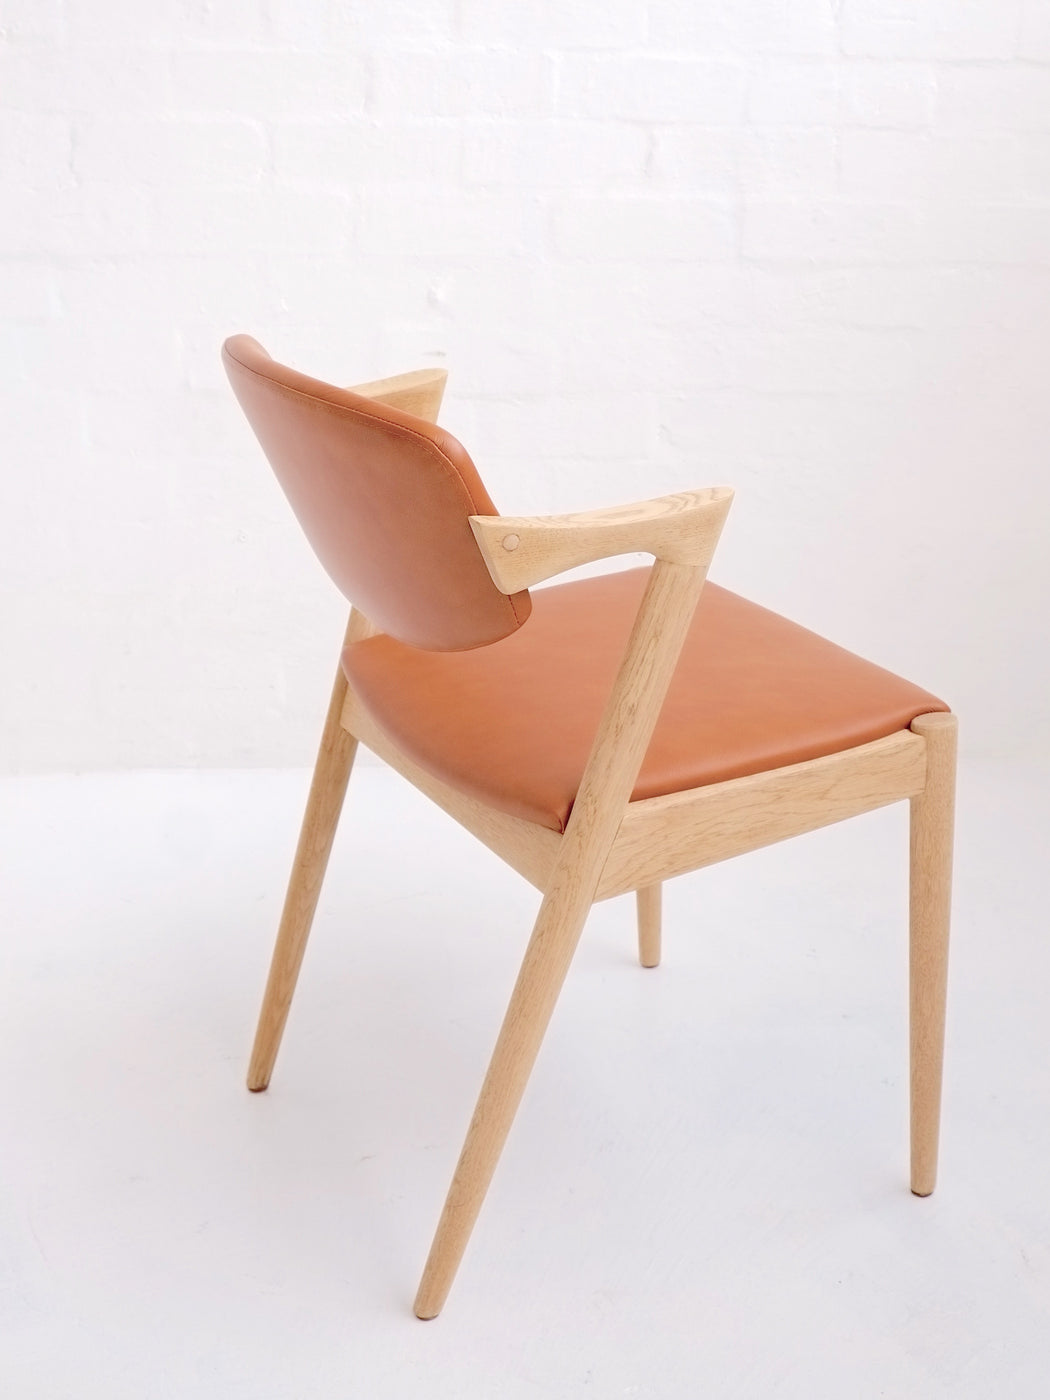 Kai Kristiansen 'Model #42' Chair